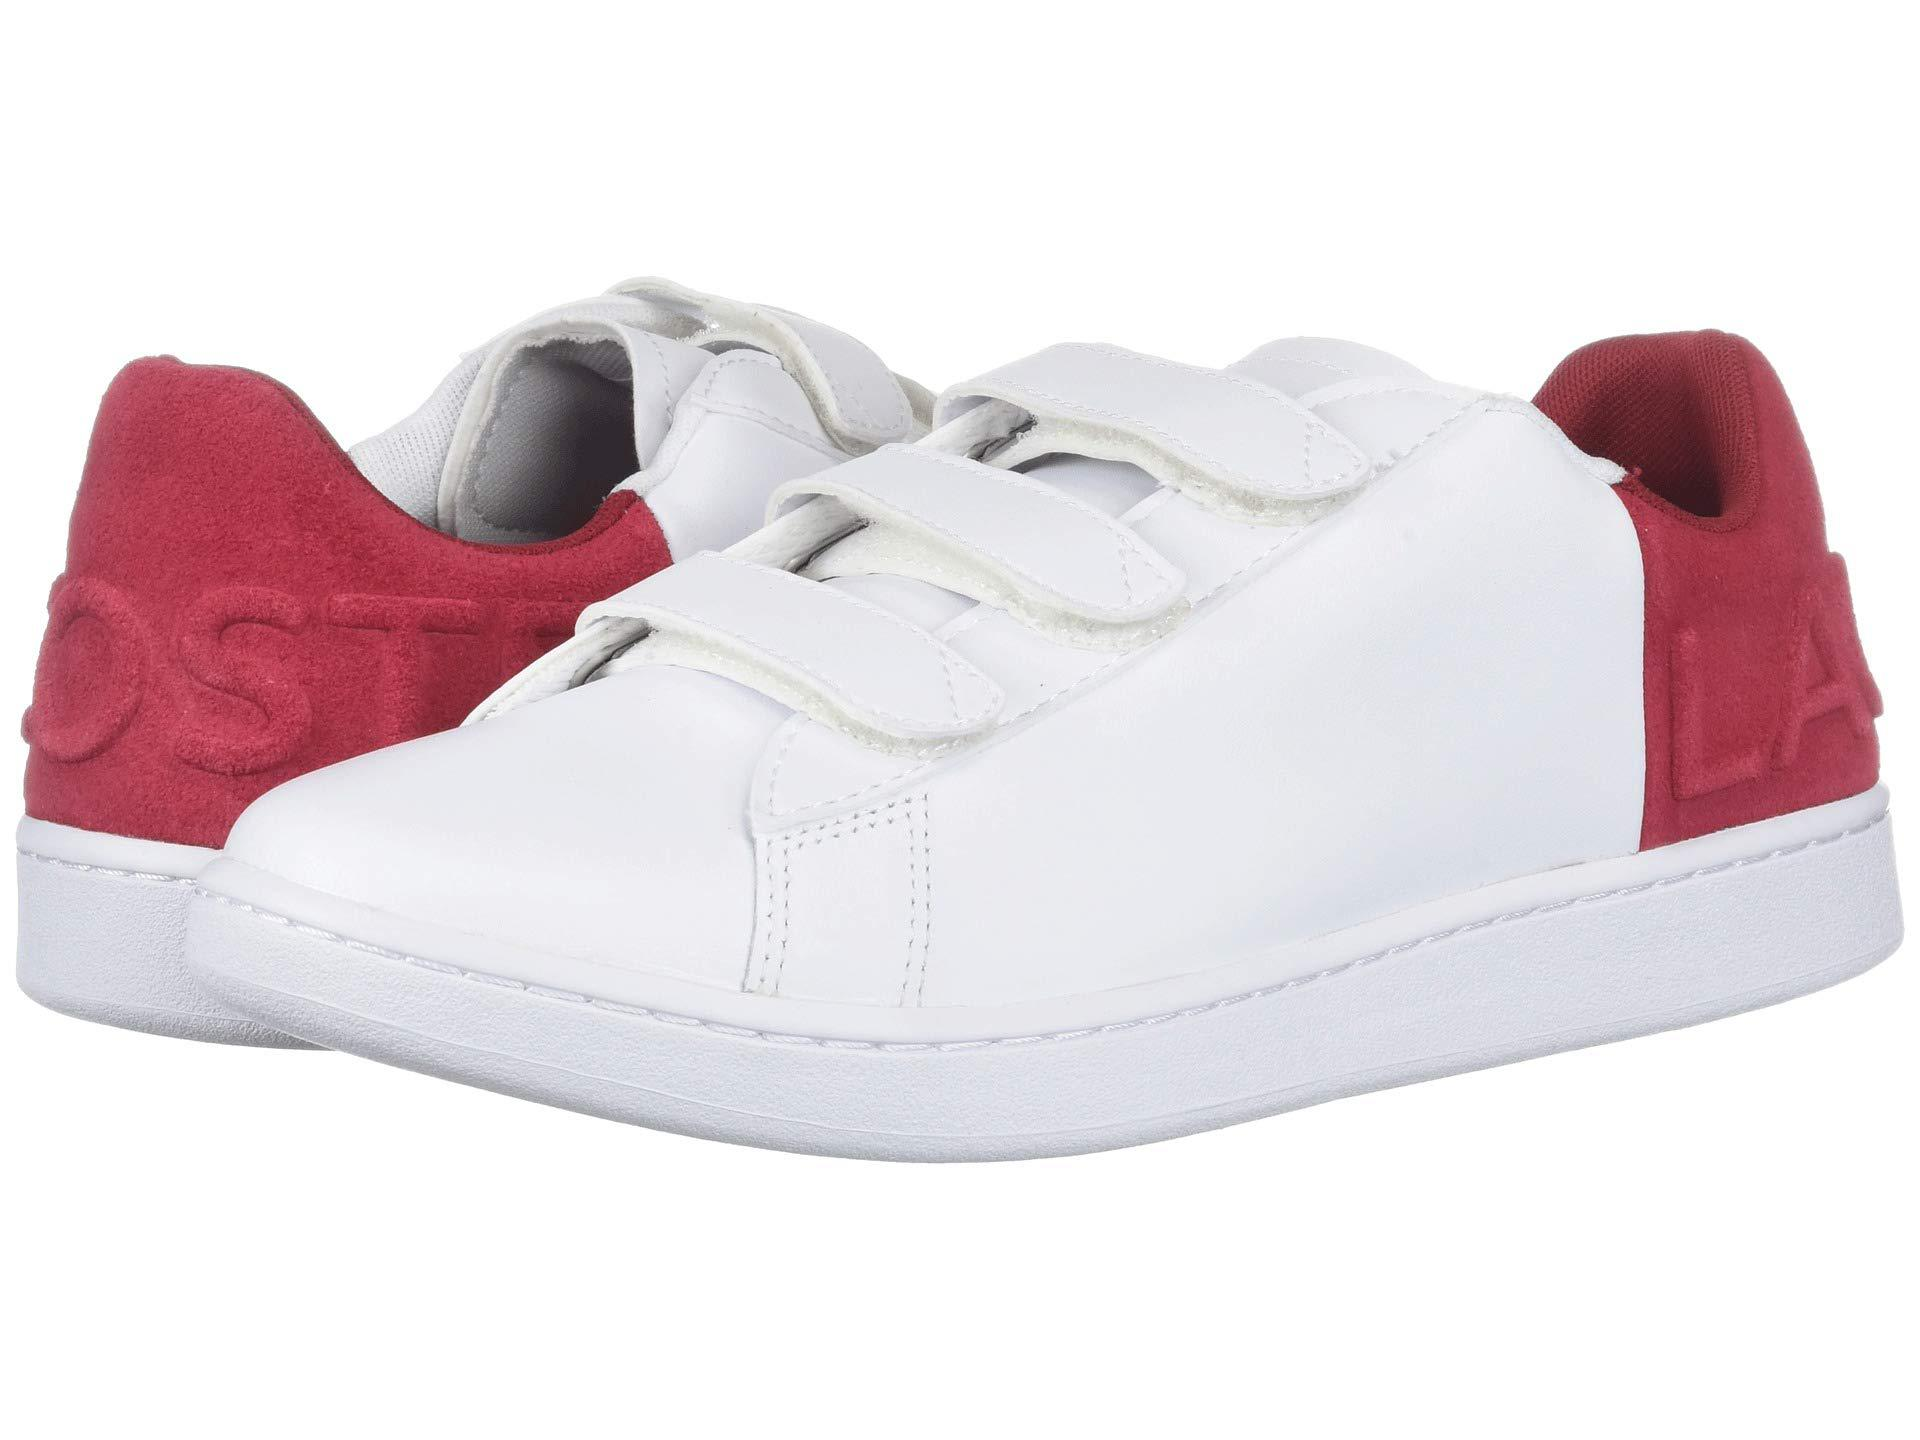 b6475ef84 Lyst - Lacoste Carnaby Evo Strap 318 1 (white red) Men s Shoes in ...